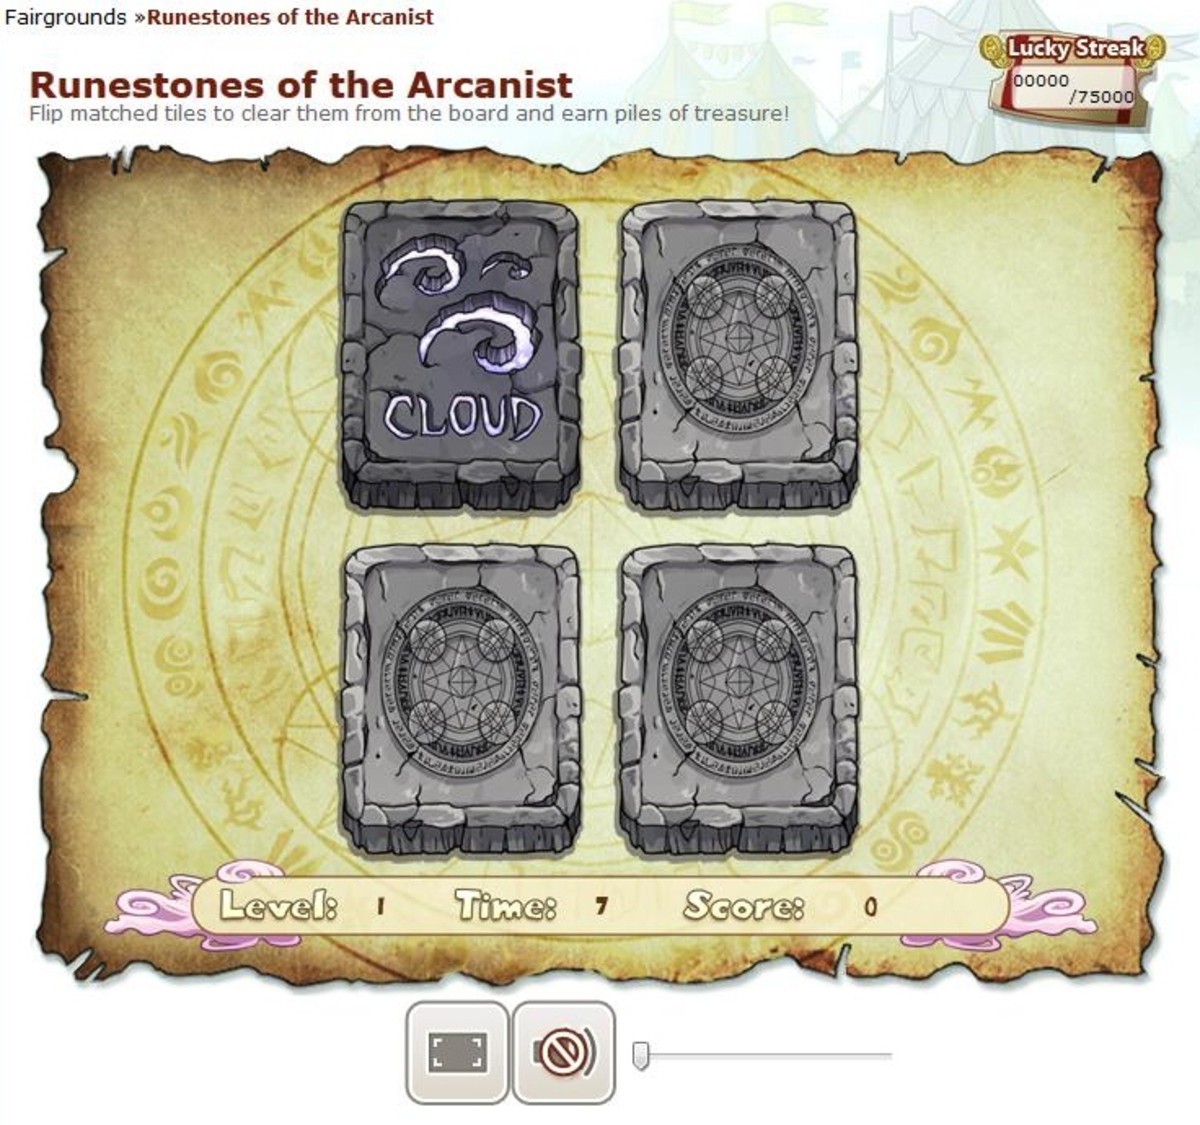 Runestones is a great game to play to earn lots of treasure in minimal time.